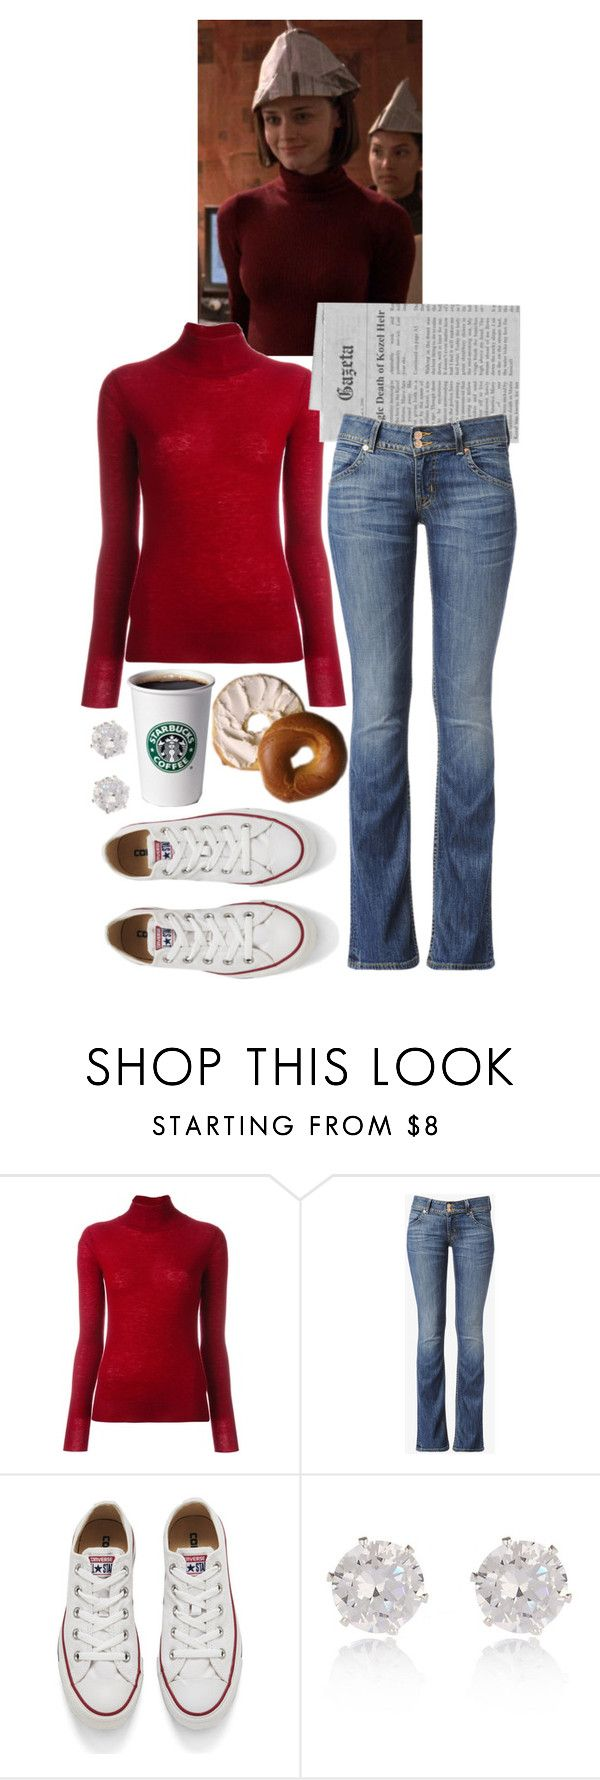 """""""Rory Gilmore Style"""" by sewing-girl ❤ liked on Polyvore featuring Joseph, Hudson Jeans and Converse"""